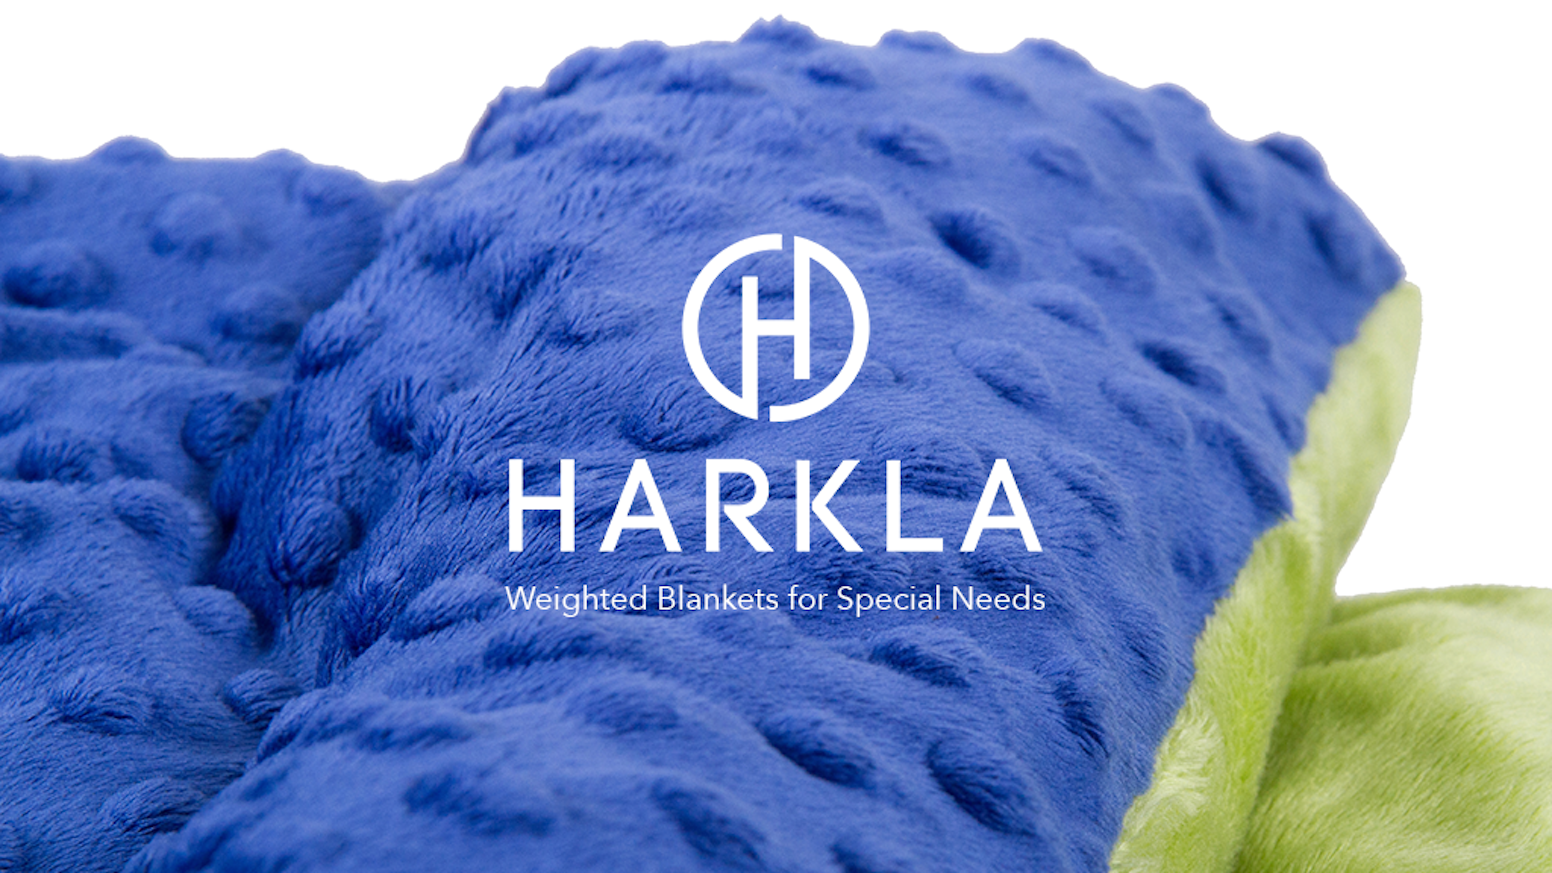 Weighted Blankets For Special Needs By Harkla By Casey